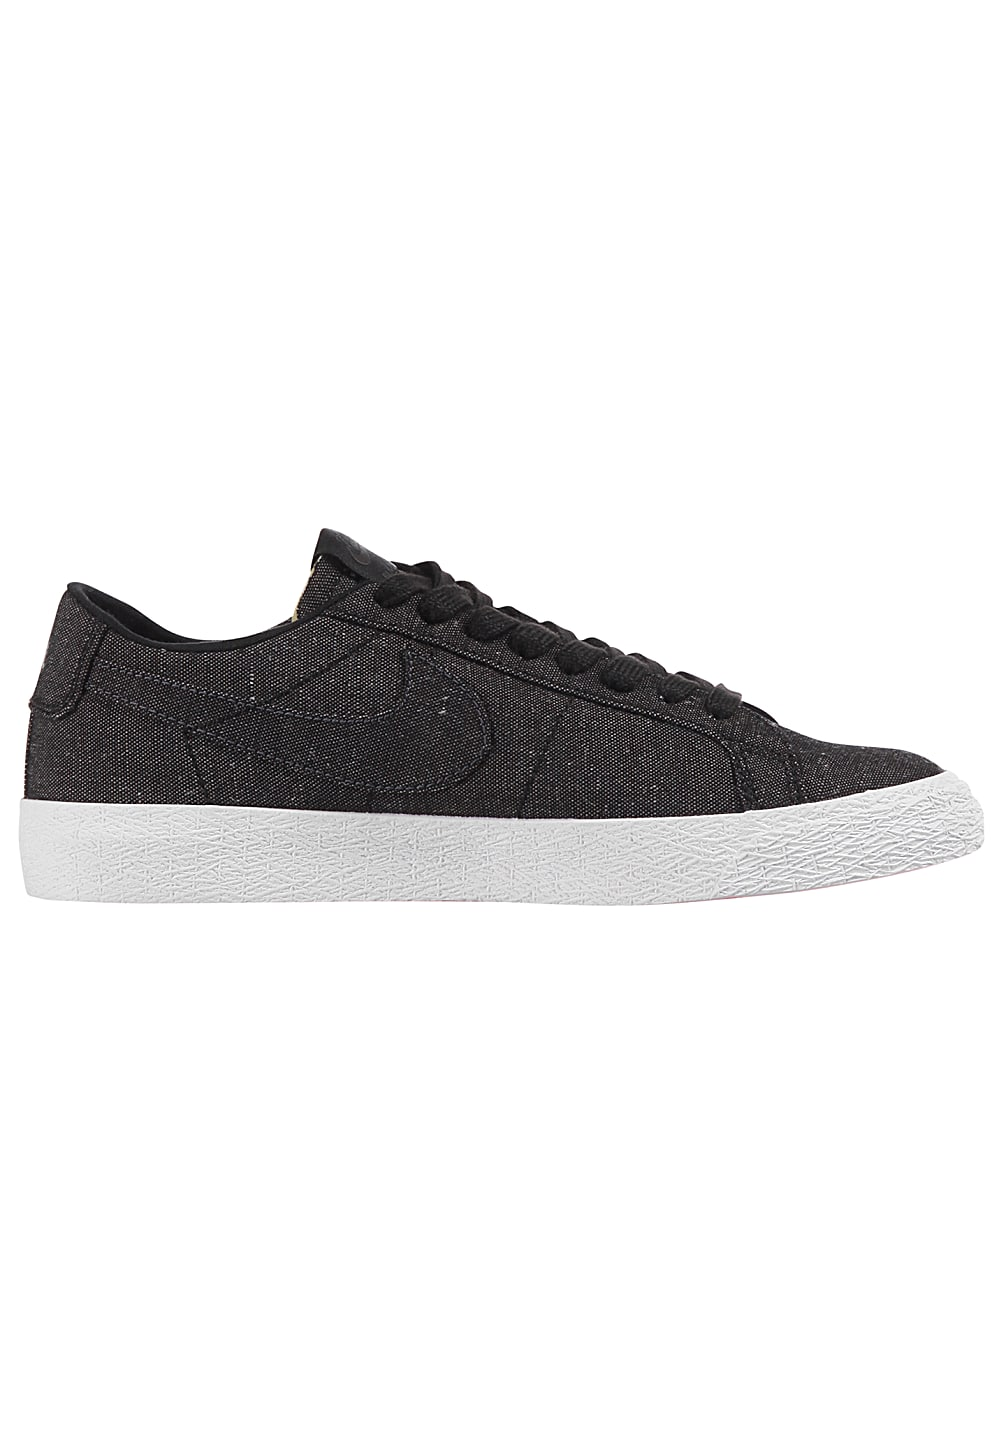 innovative design 302fc 71ecf Next. -10%. NIKE SB. Zoom Blazer Low Canvas Decon - Sneakers ...